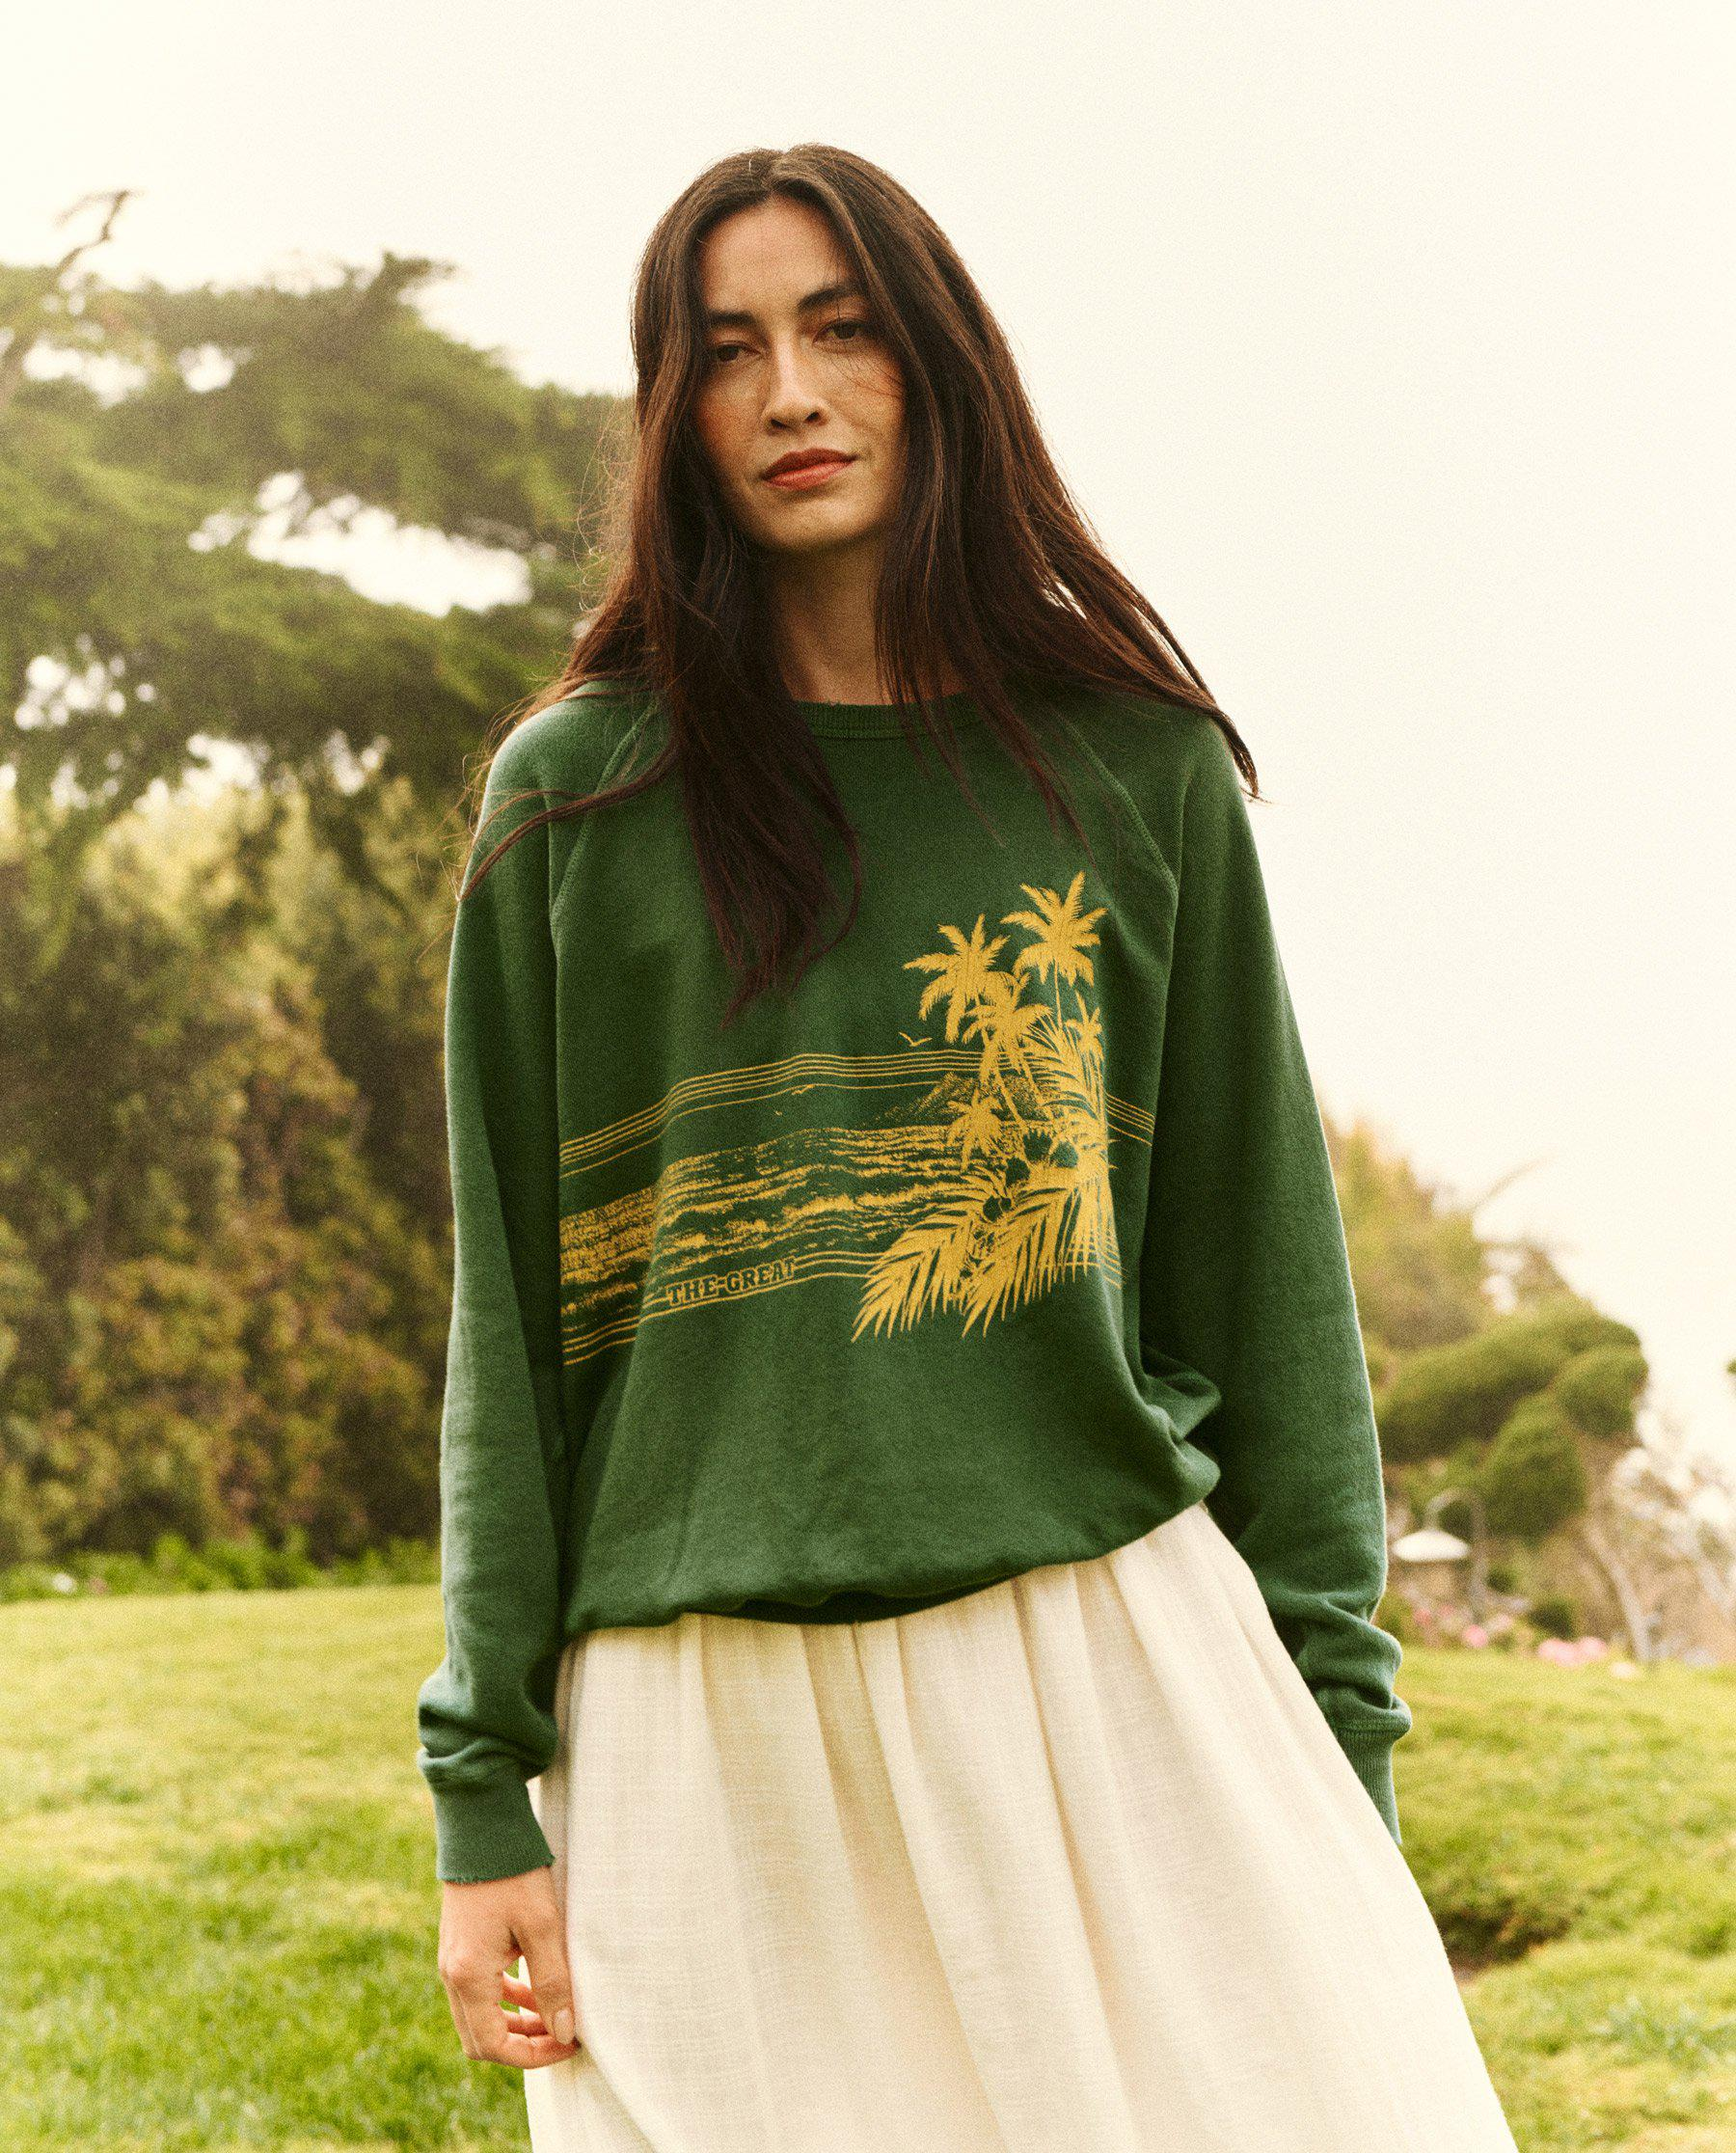 The College Sweatshirt. Graphic -- Palm Leaf with Shoreline Graphic